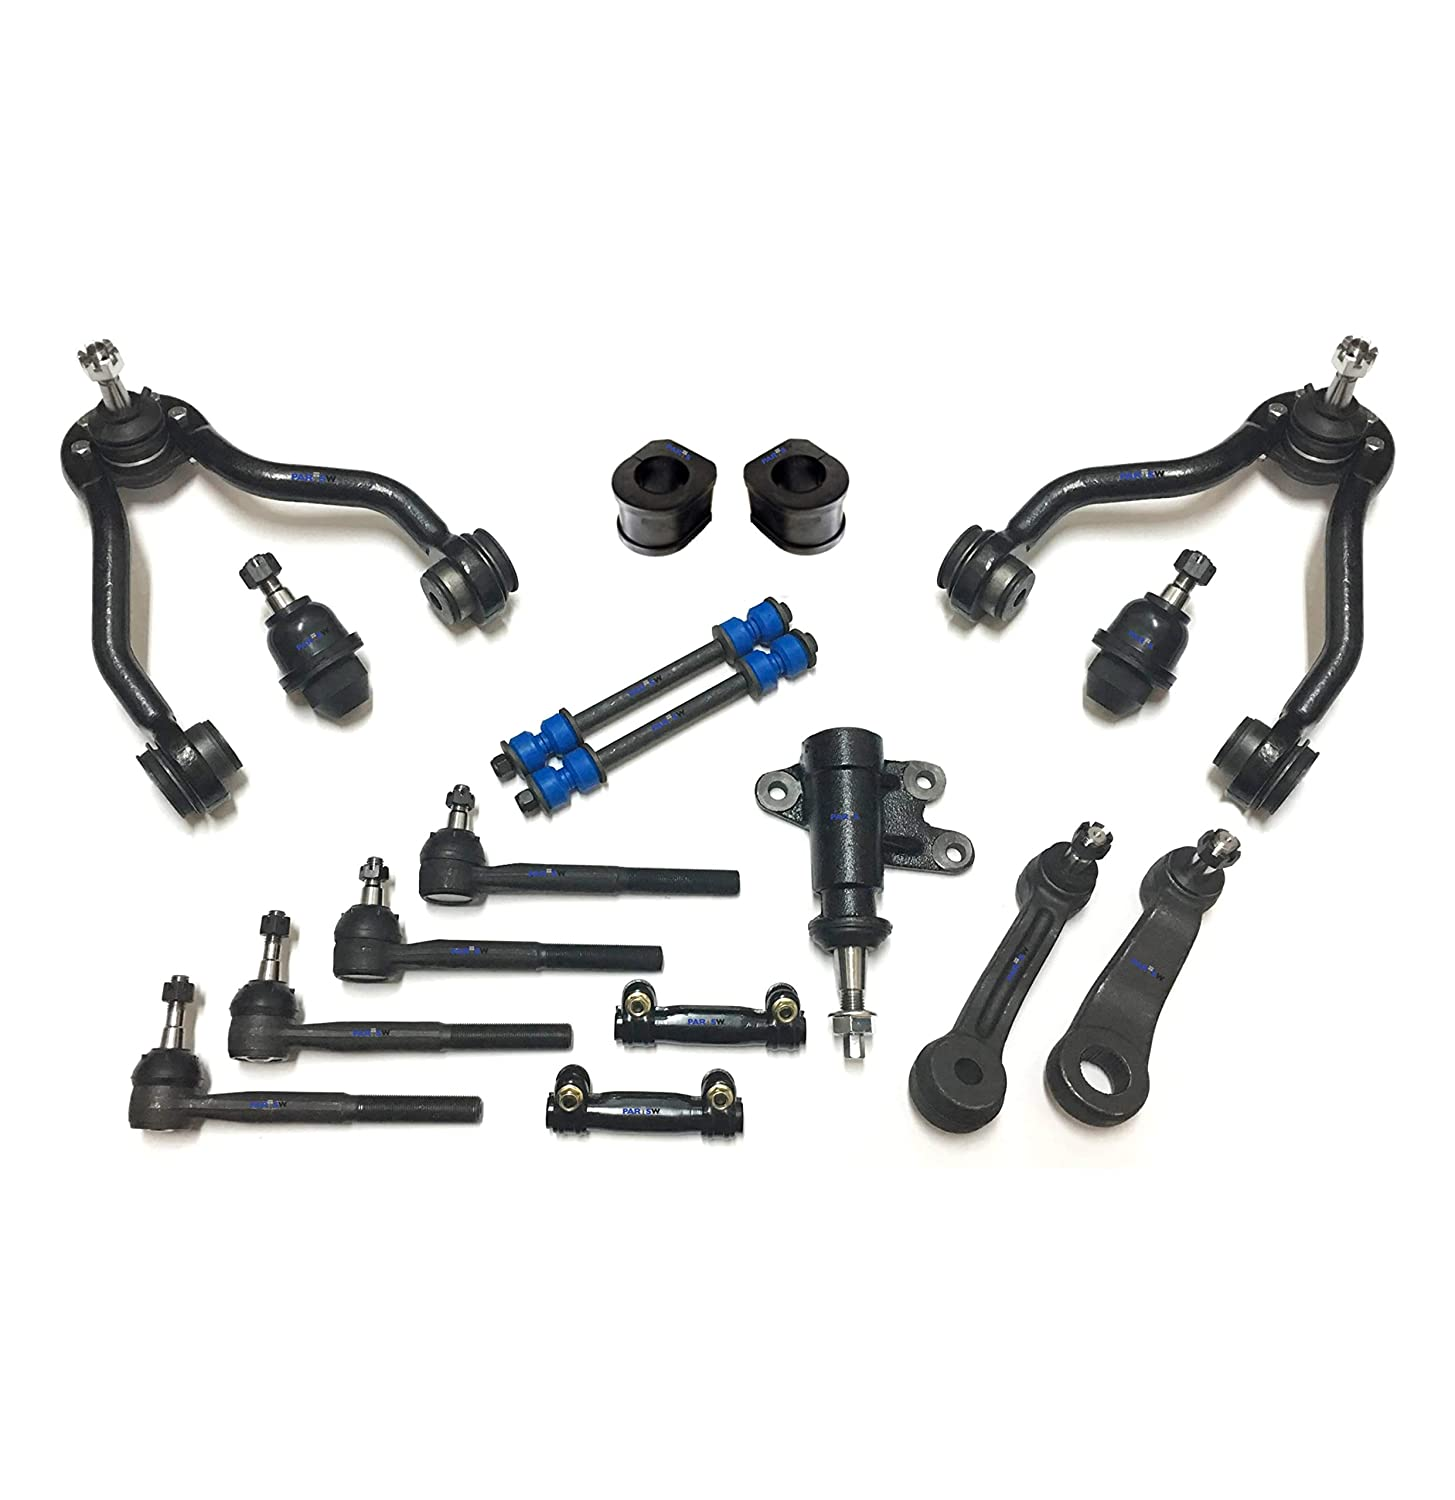 Idler /& Pitman Arms PartsW 17 Pc New Suspension Kit for Cadillac Chevrolet GMC//Adjusting Sleeves 1.25 inch Tie Rod Ends Front Sway Bar Frame Bushings 31.75mm Ball Joints Control Arms